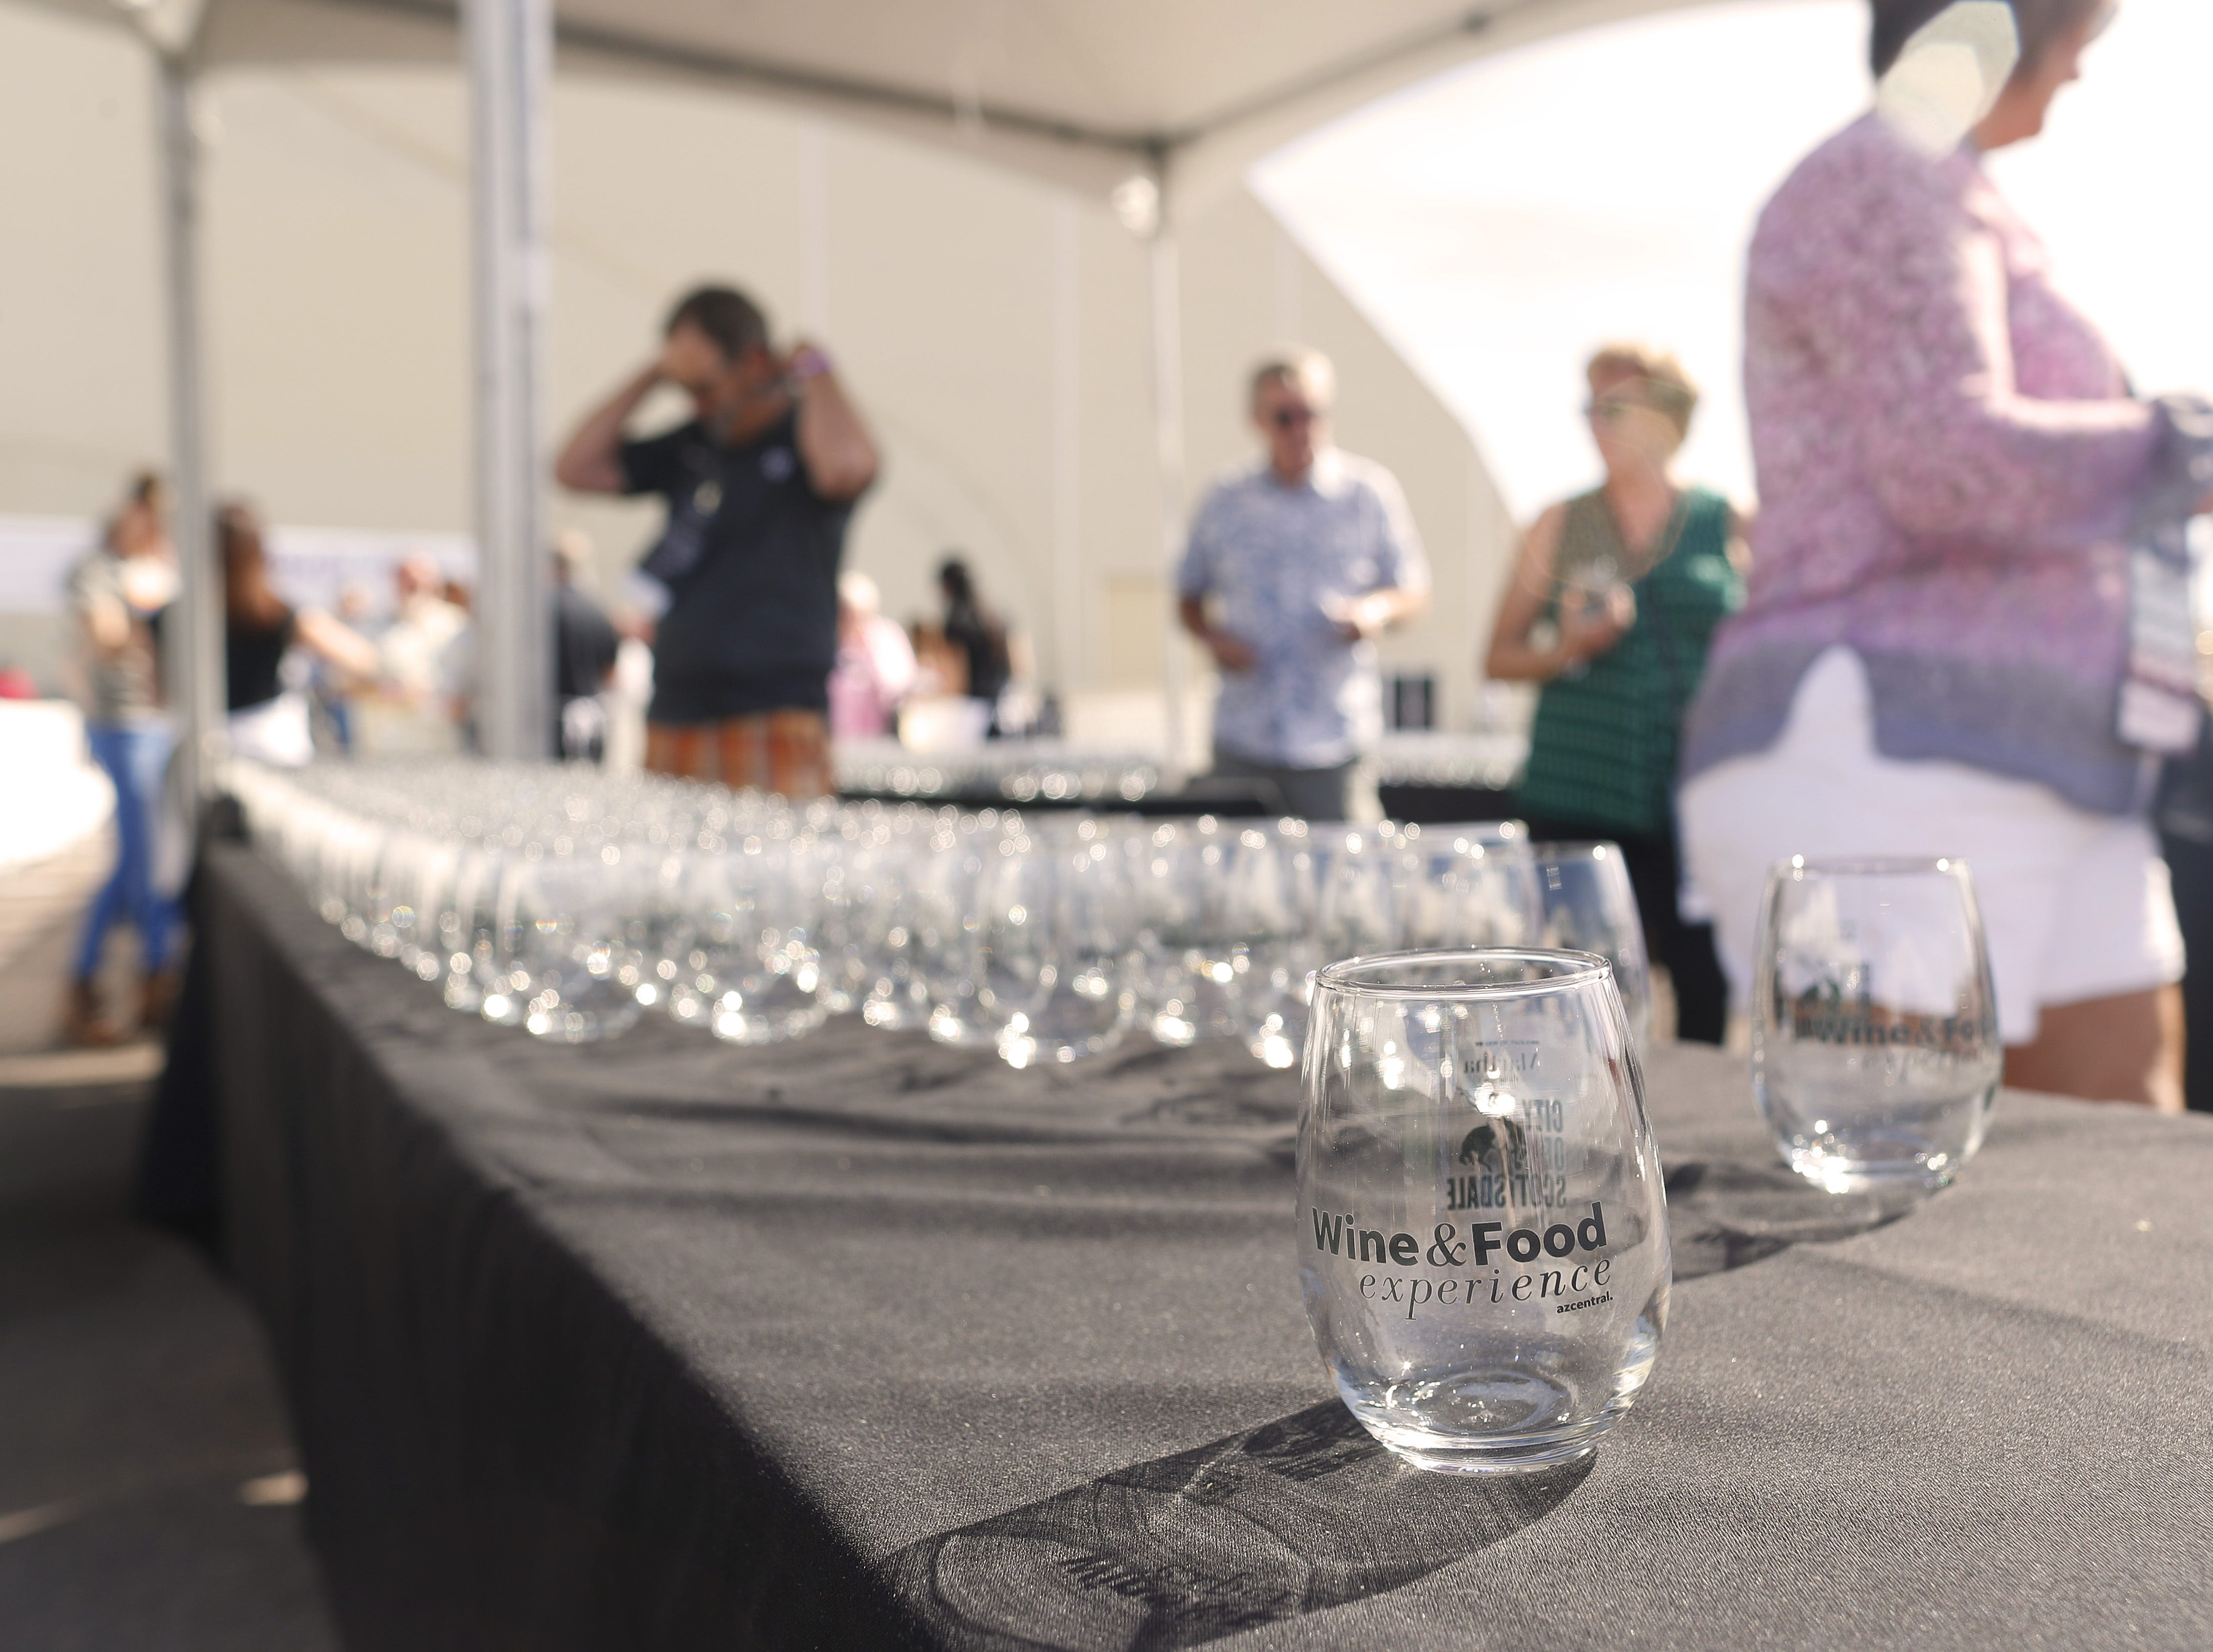 People arrive during the azcentral Wine & Food Experience at WestWorld of Scottsdale, Ariz. on Nov. 4, 2018.